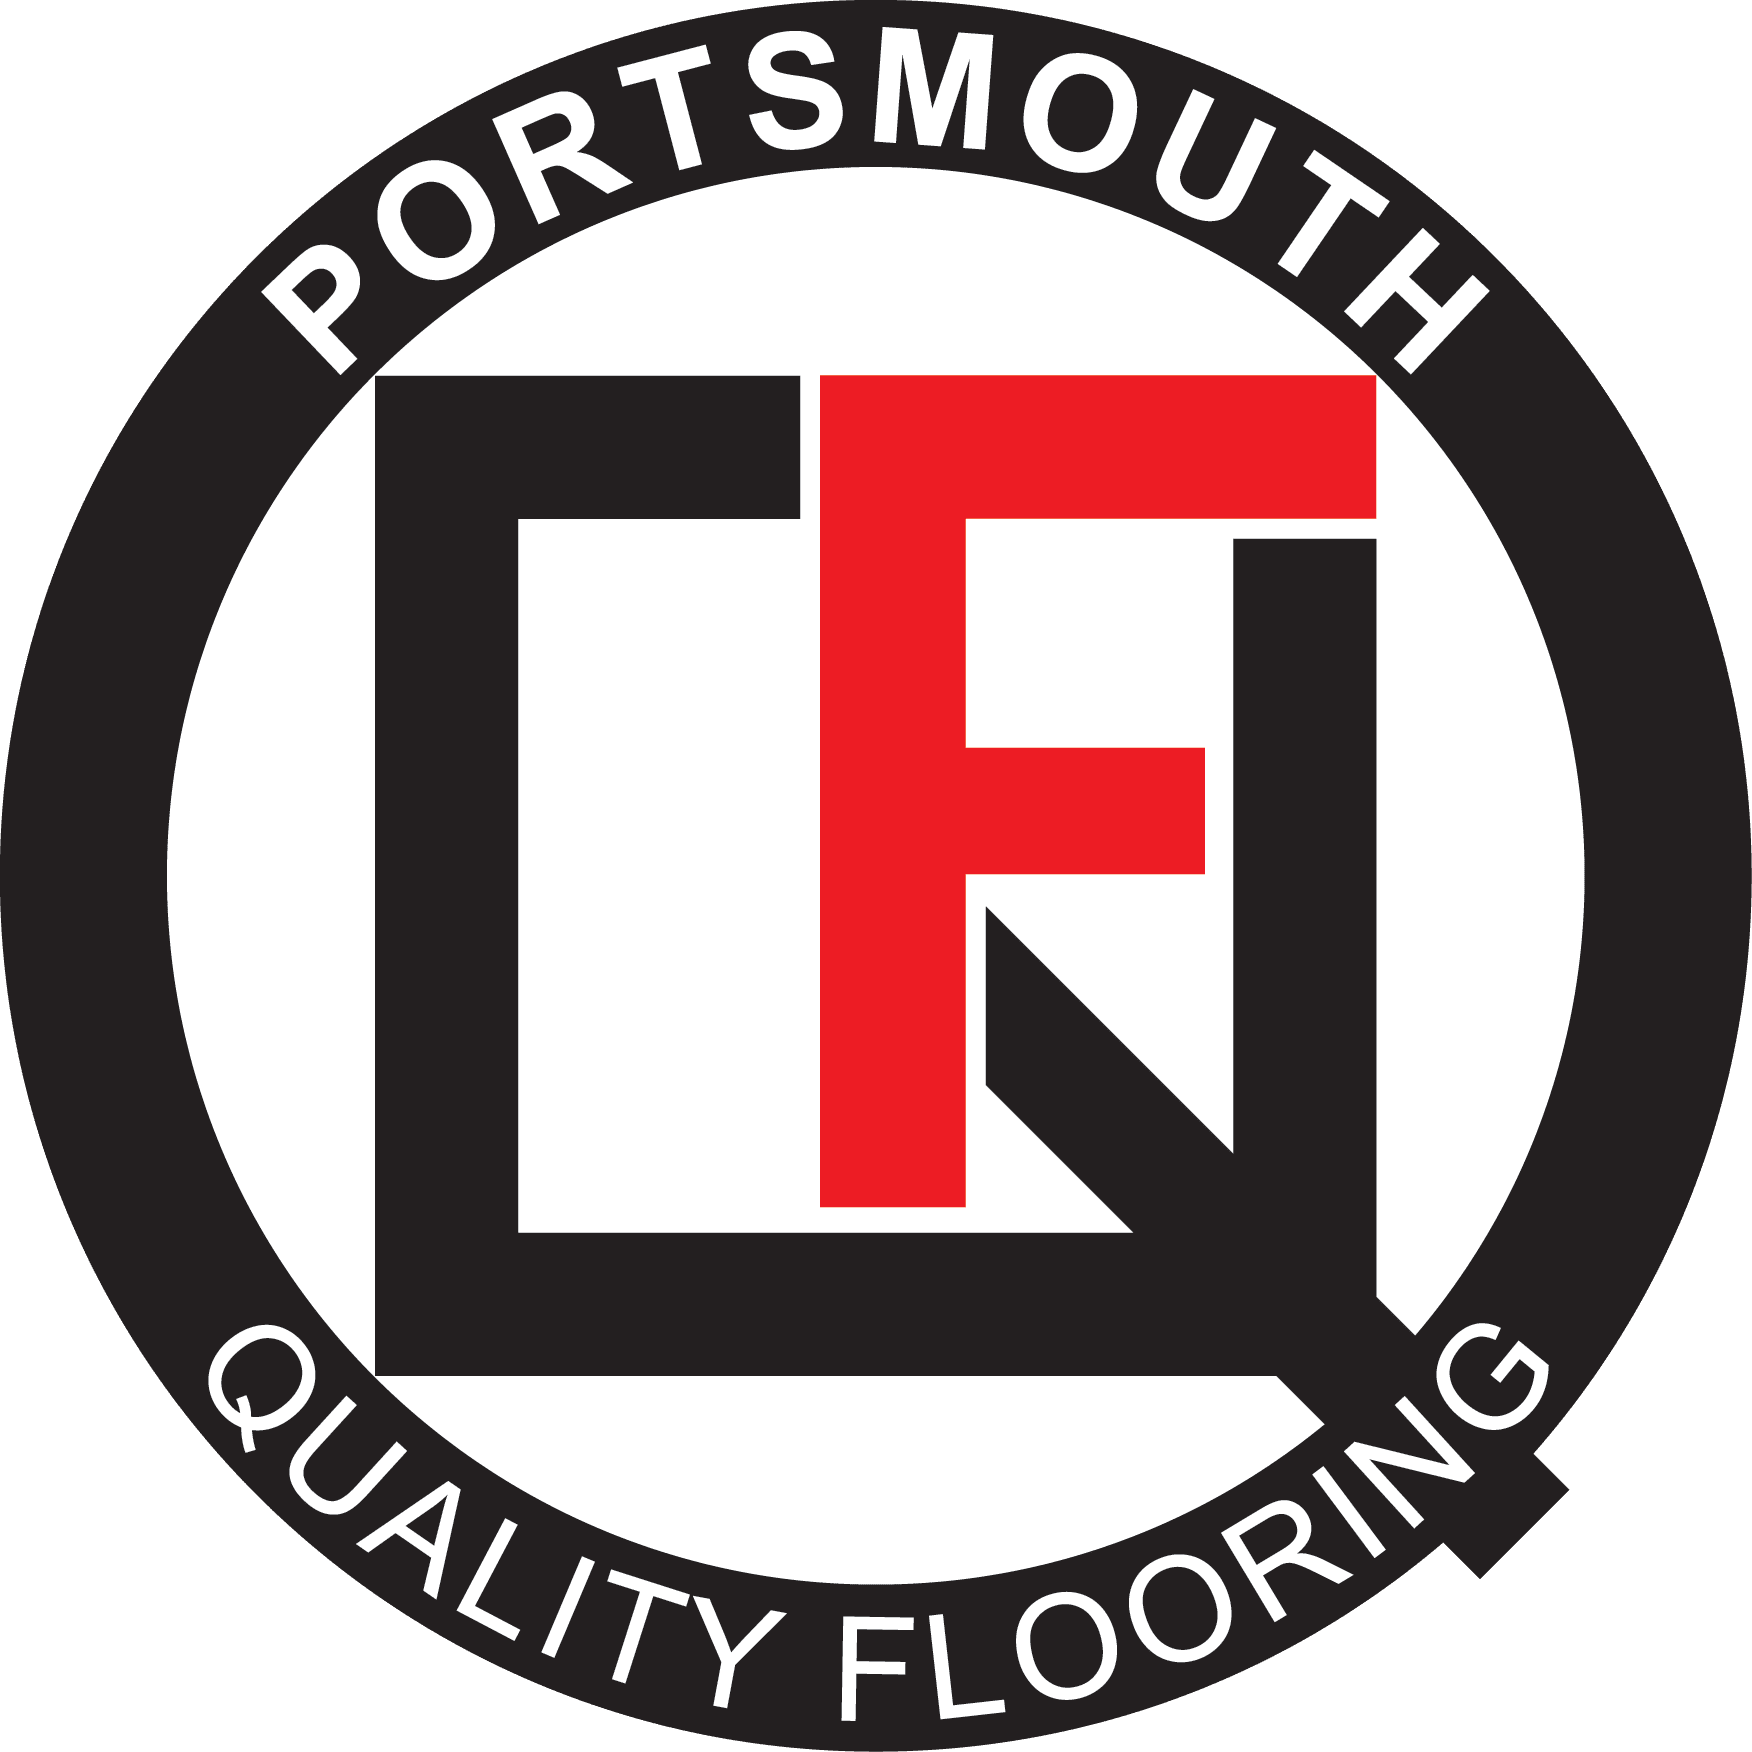 Portsmouth Quality Flooring